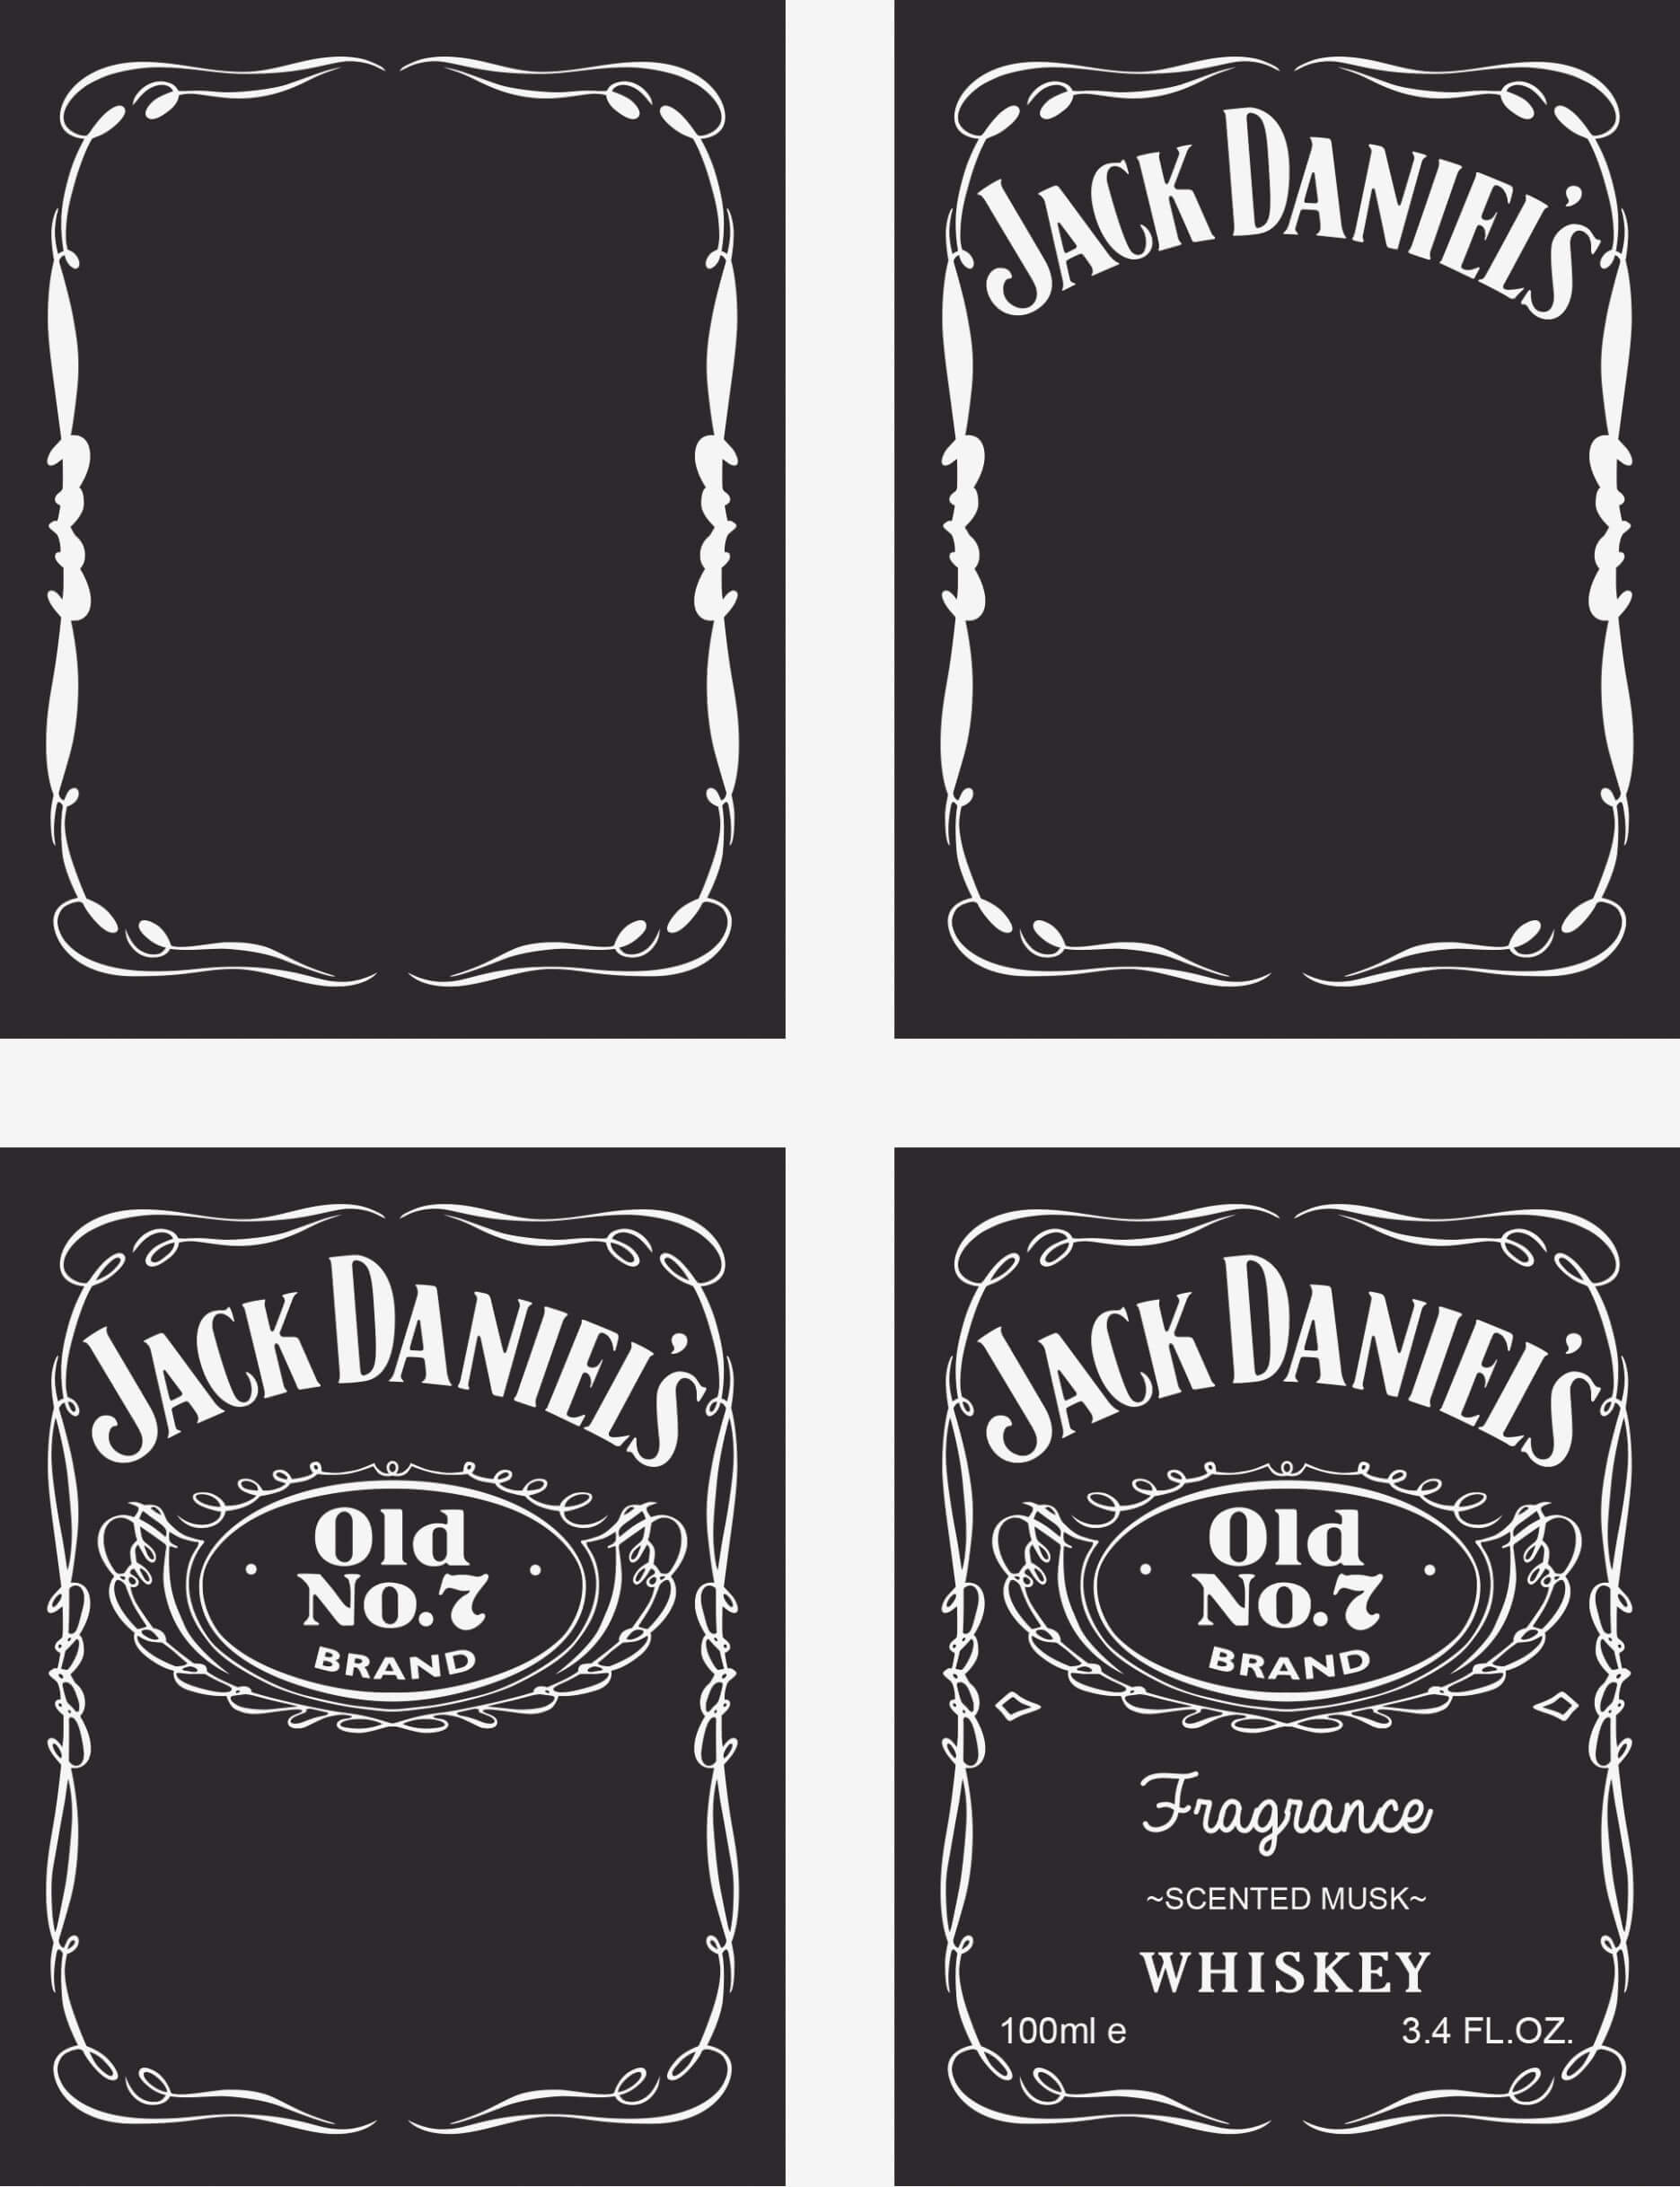 Blank Jack Daniels Label Template - Atlantaauctionco For Blank Jack Daniels Label Template